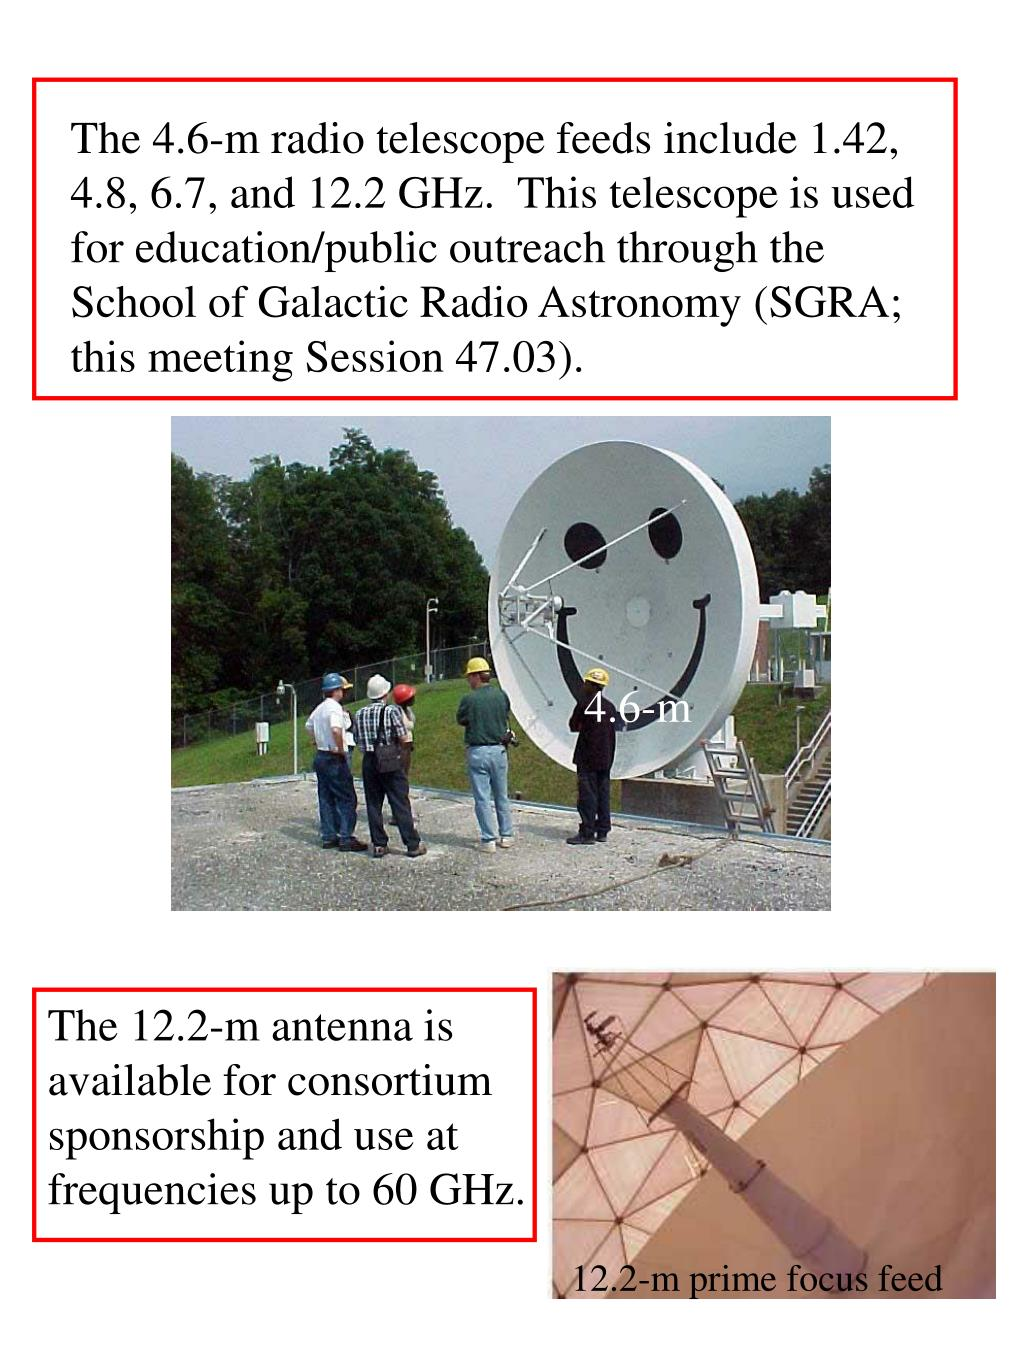 The 4.6-m radio telescope feeds include 1.42, 4.8, 6.7, and 12.2 GHz.  This telescope is used for education/public outreach through the School of Galactic Radio Astronomy (SGRA; this meeting Session 47.03).